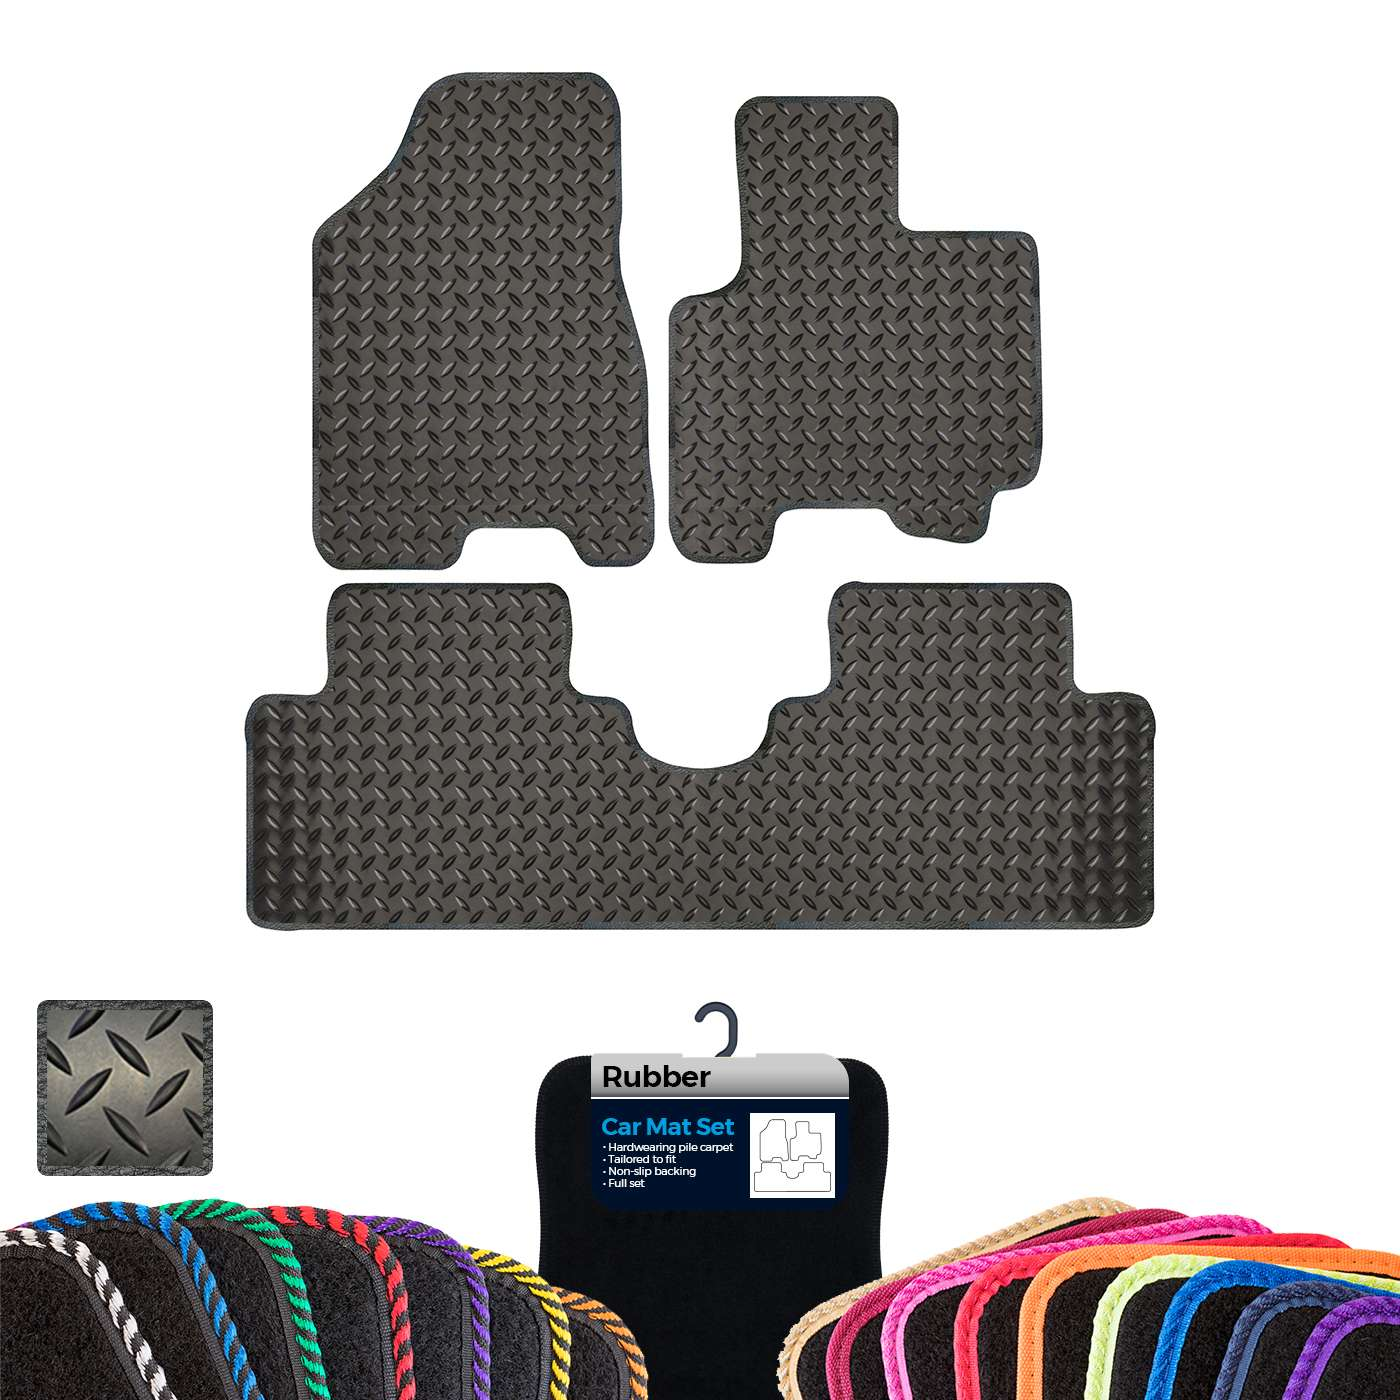 2 Clip 07 ON 1 SERIES SINGLE DRIVERS CAR MAT TAILORED FULLY BMW E82